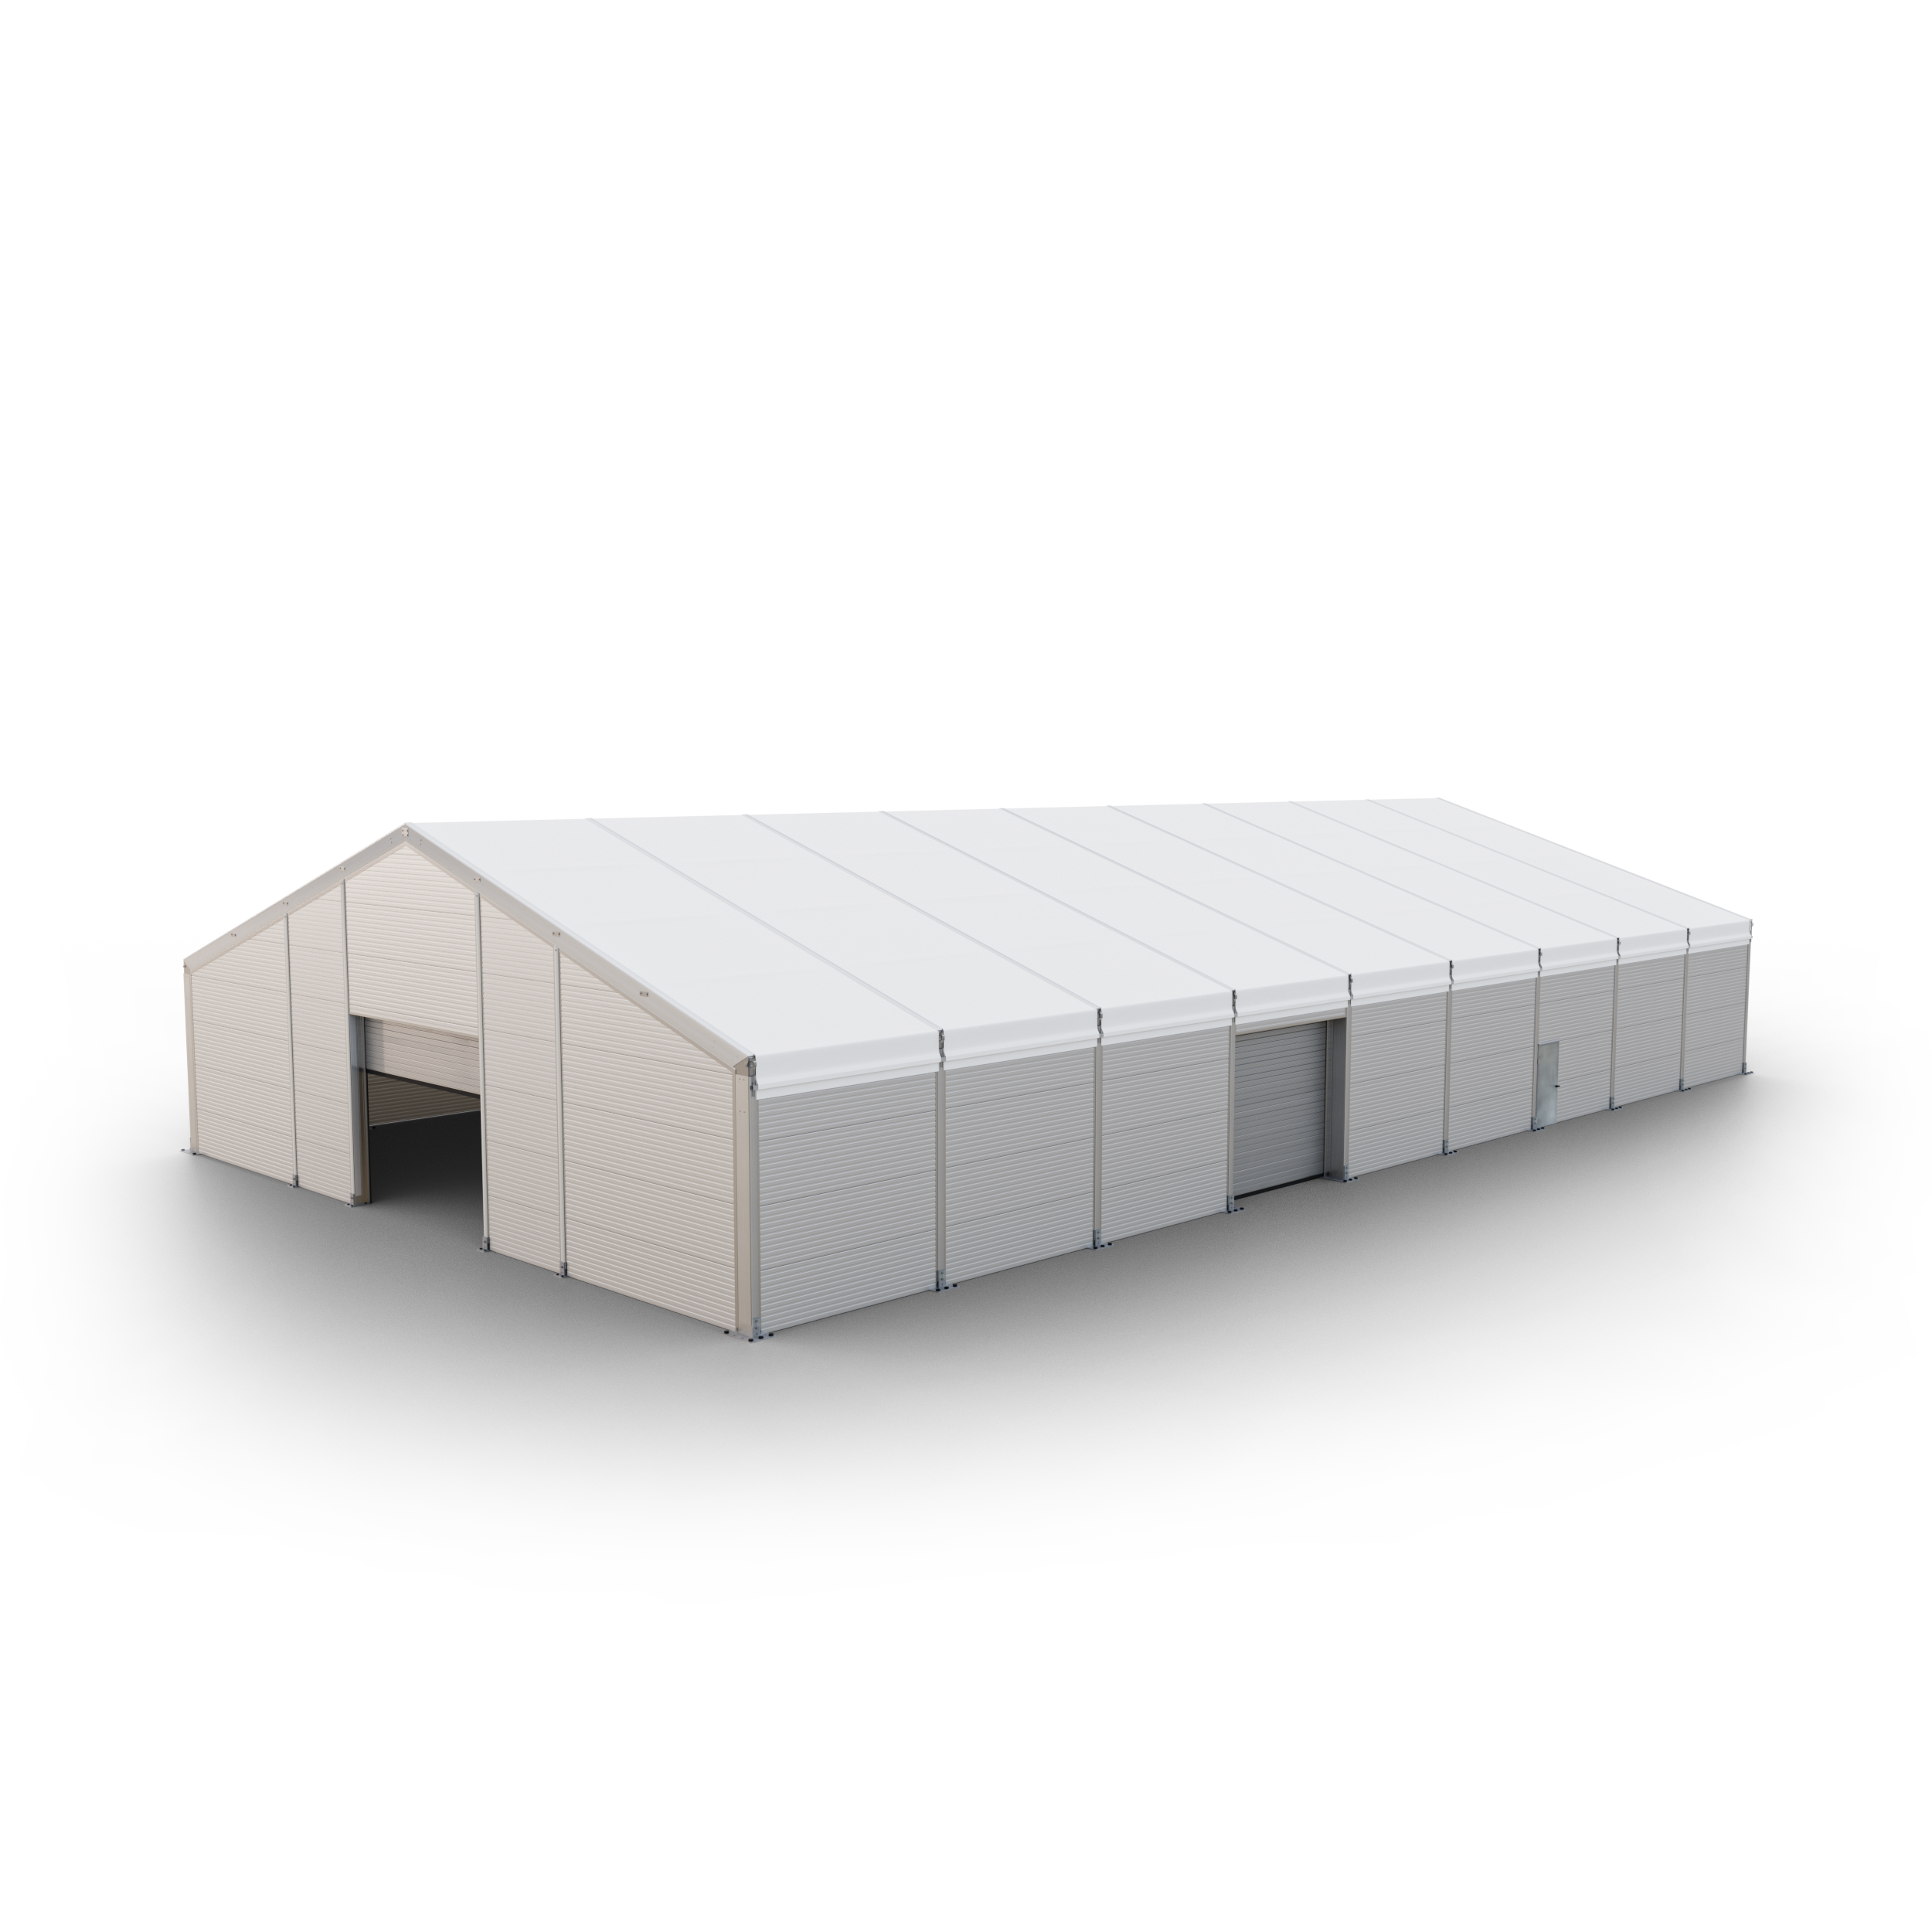 temporary buildings and warehouses: prices